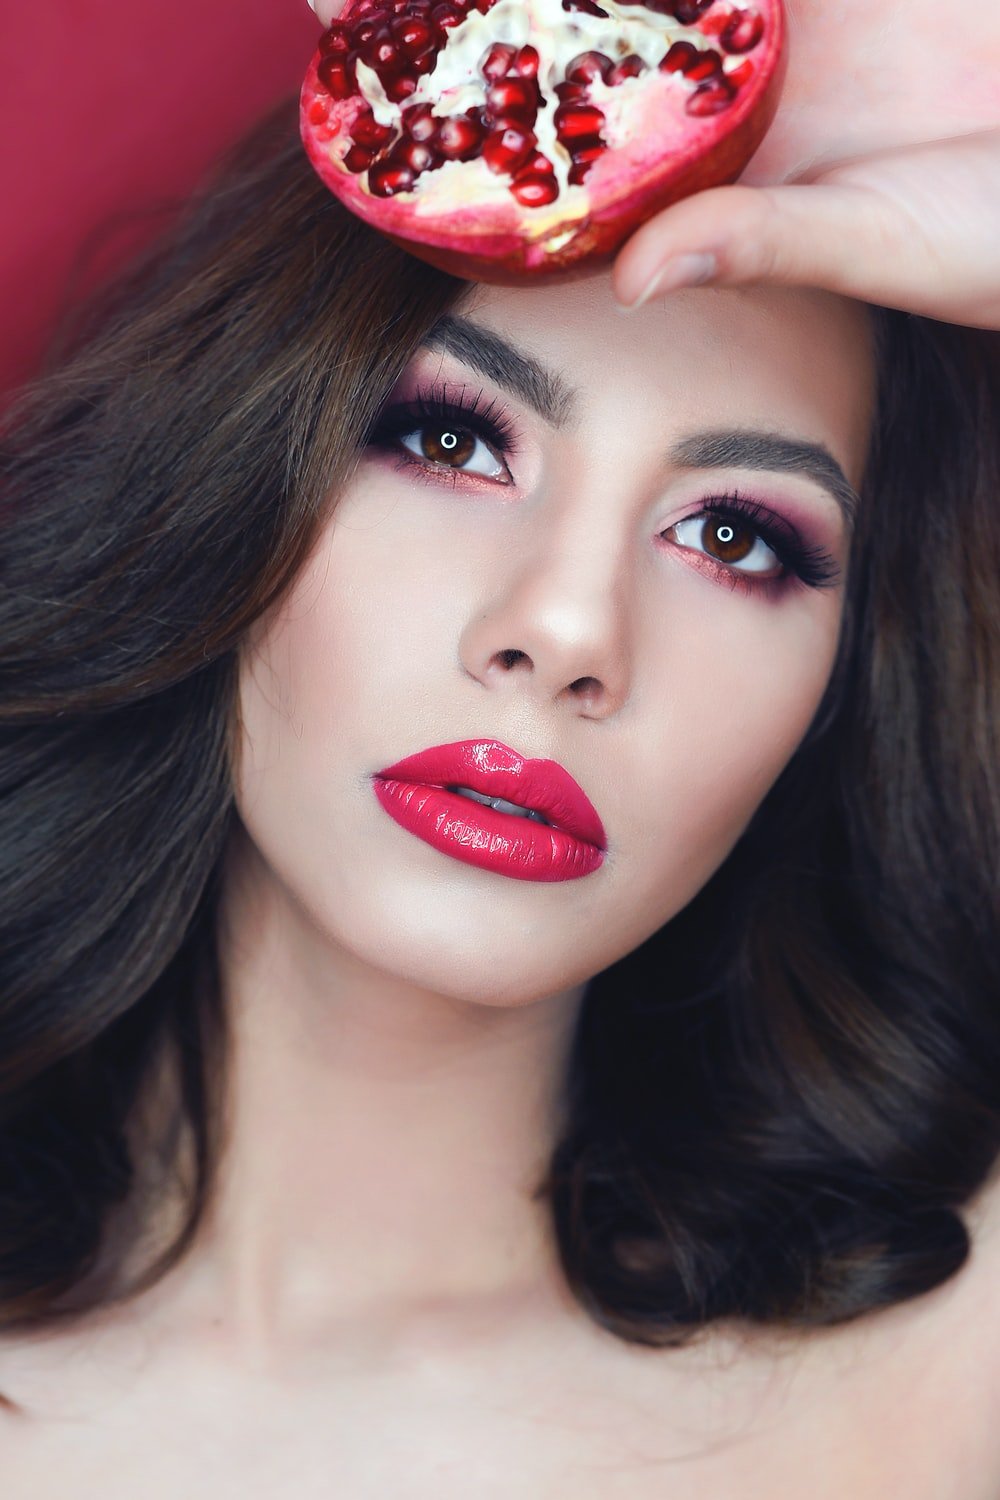 woman wearing makeup while holding sliced pomegranate fruit